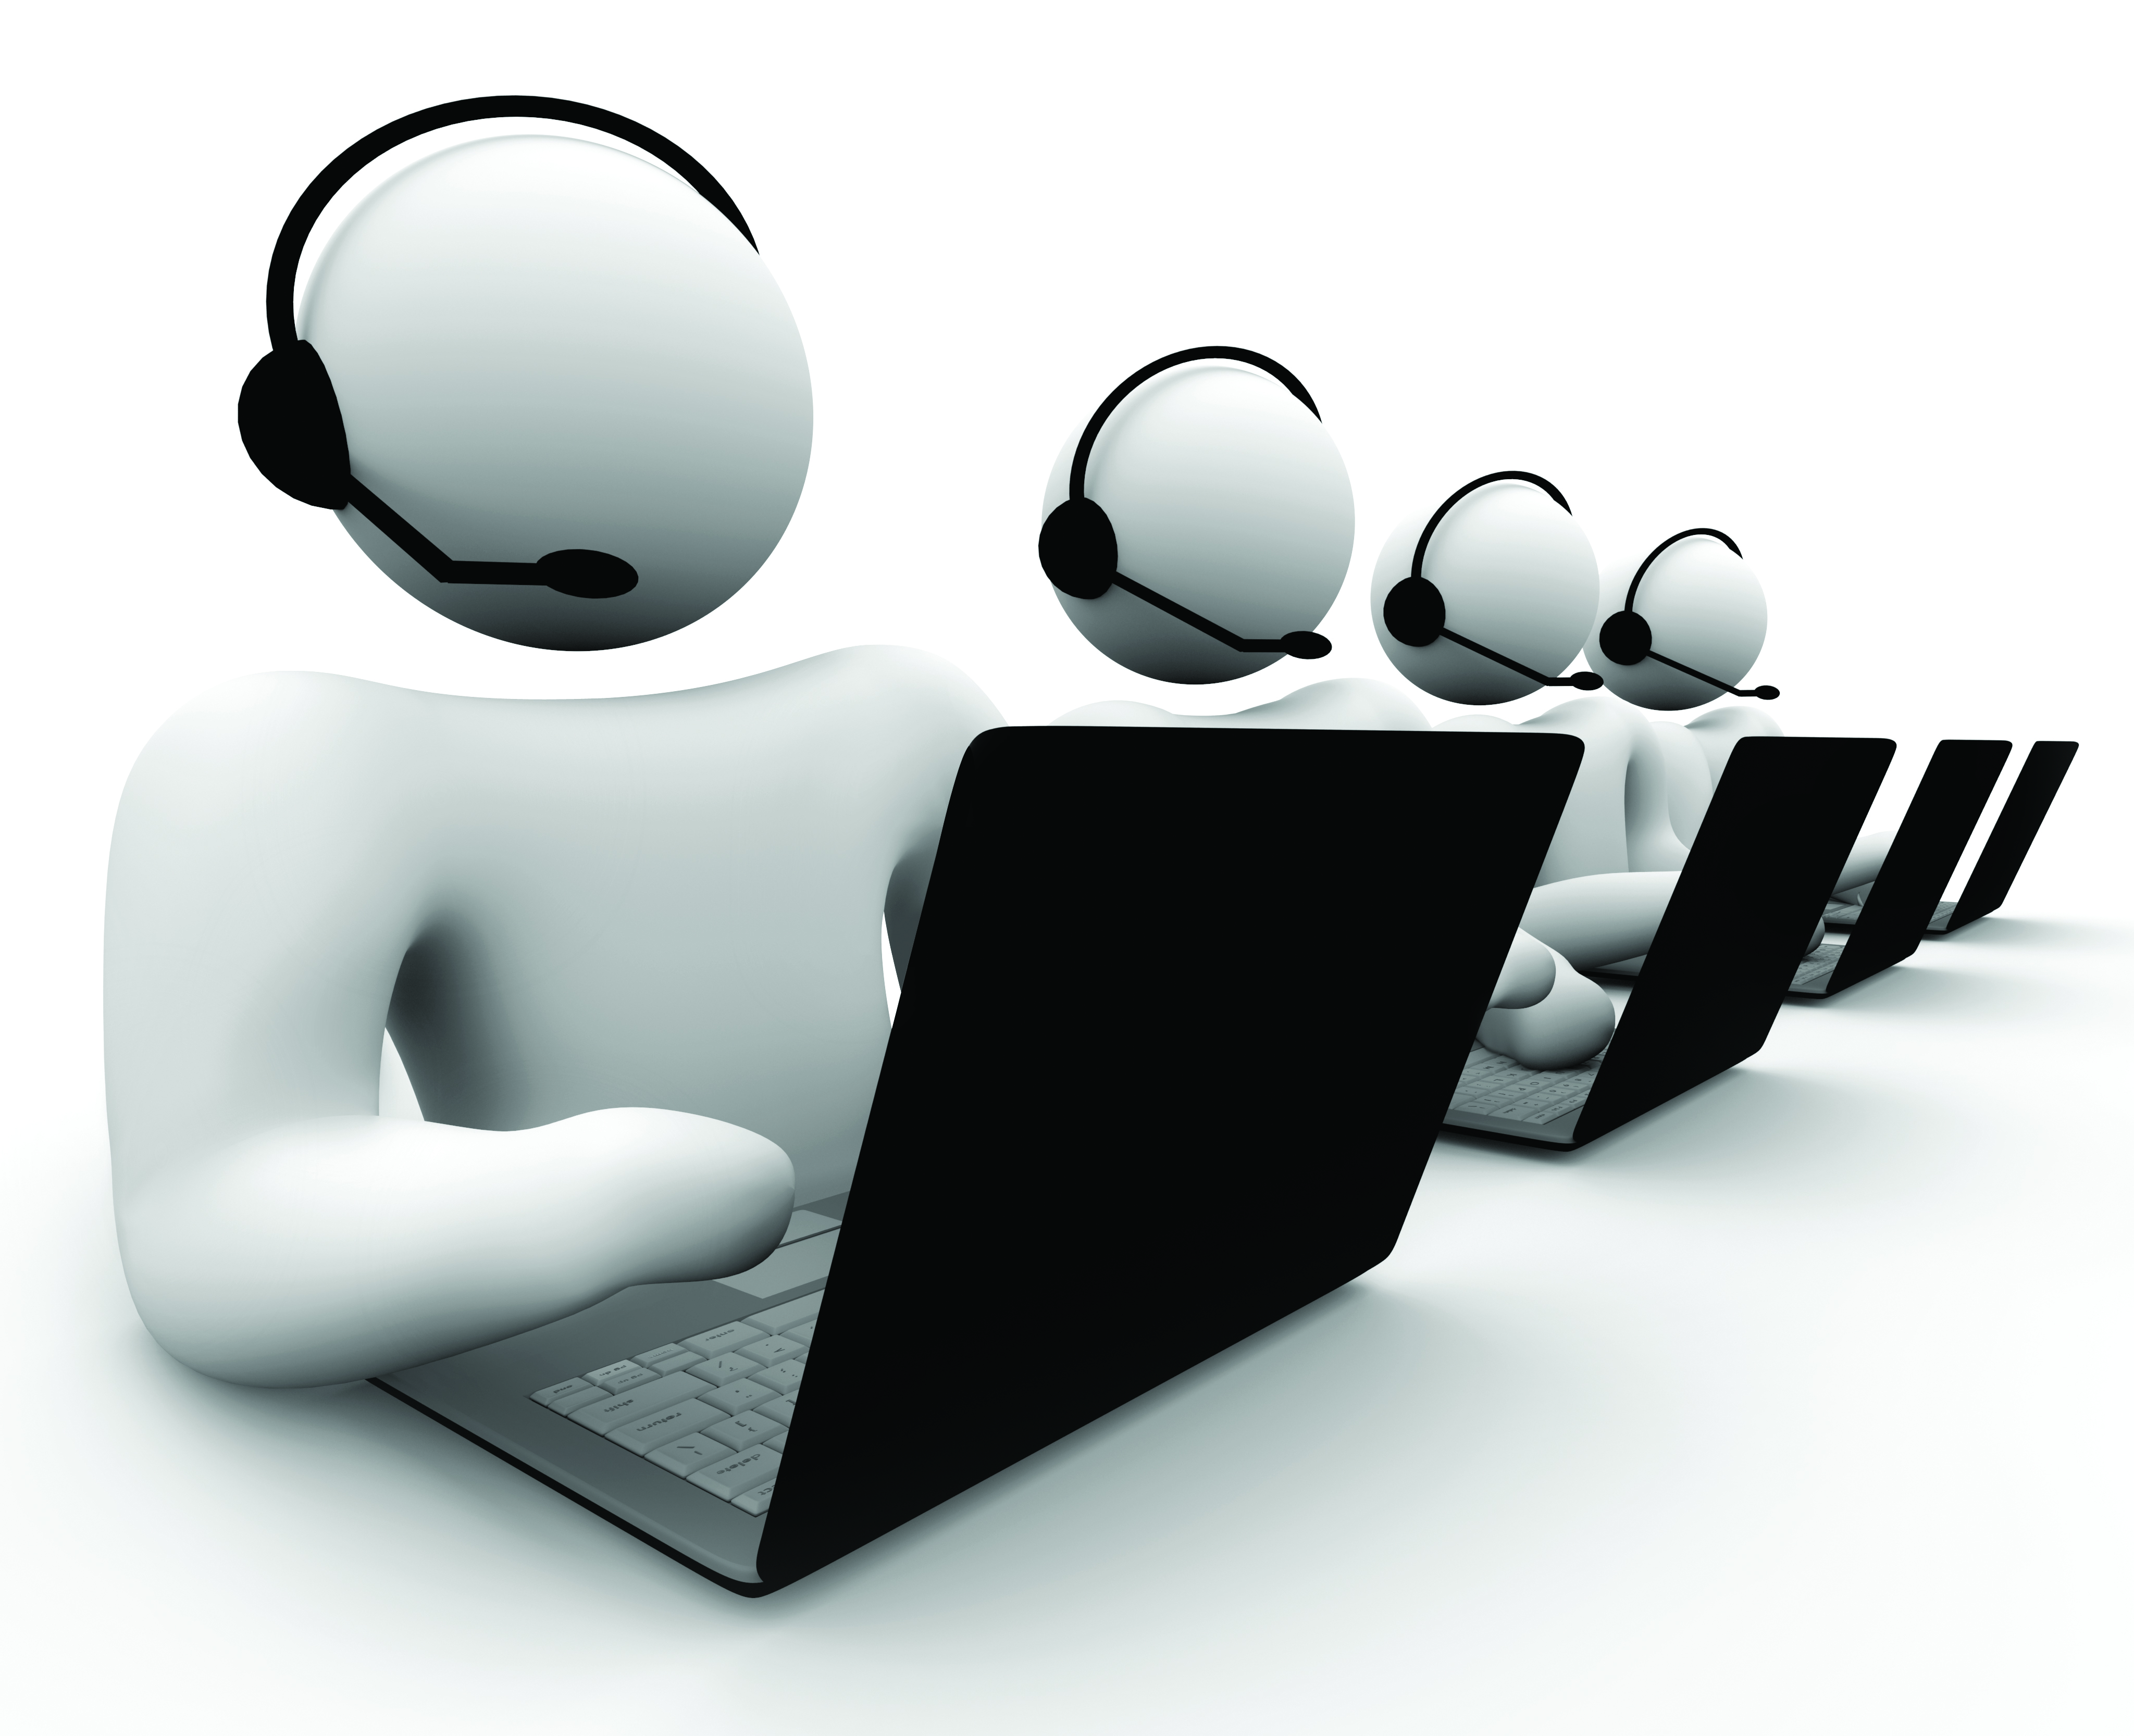 Advances In Help Desk Technology Means Users  Problems Are Solved More